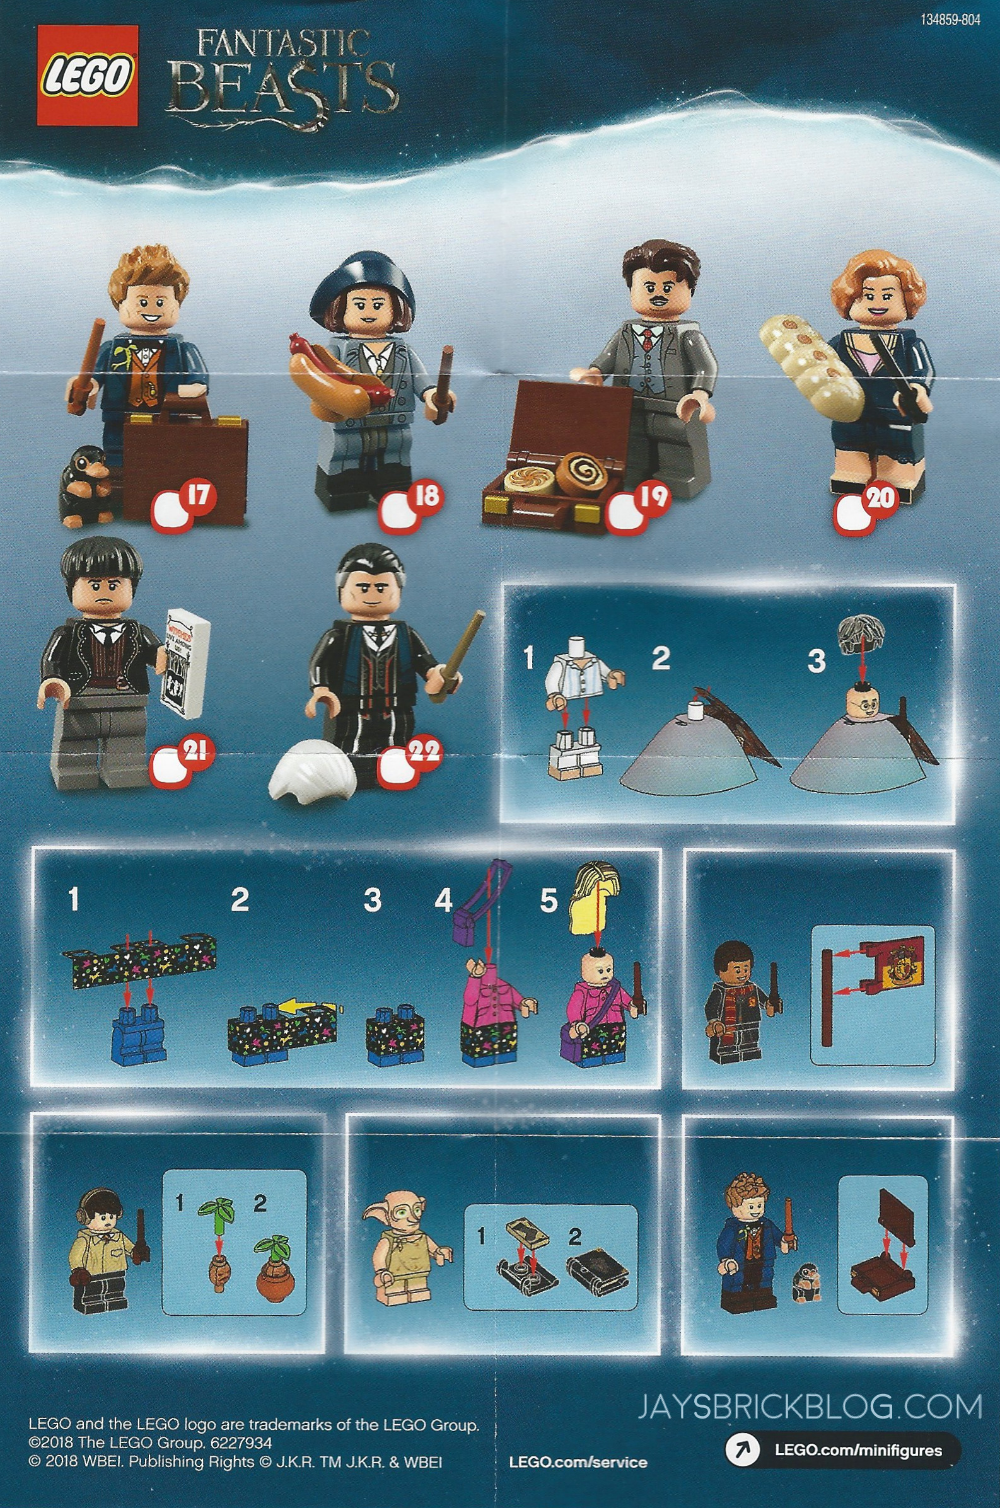 Review Lego Harry Potter And Fantastic Beasts Minifigures Jay S Brick Blog Mini Figures Lego Harry Potter Minifigures Lego Harry Potter